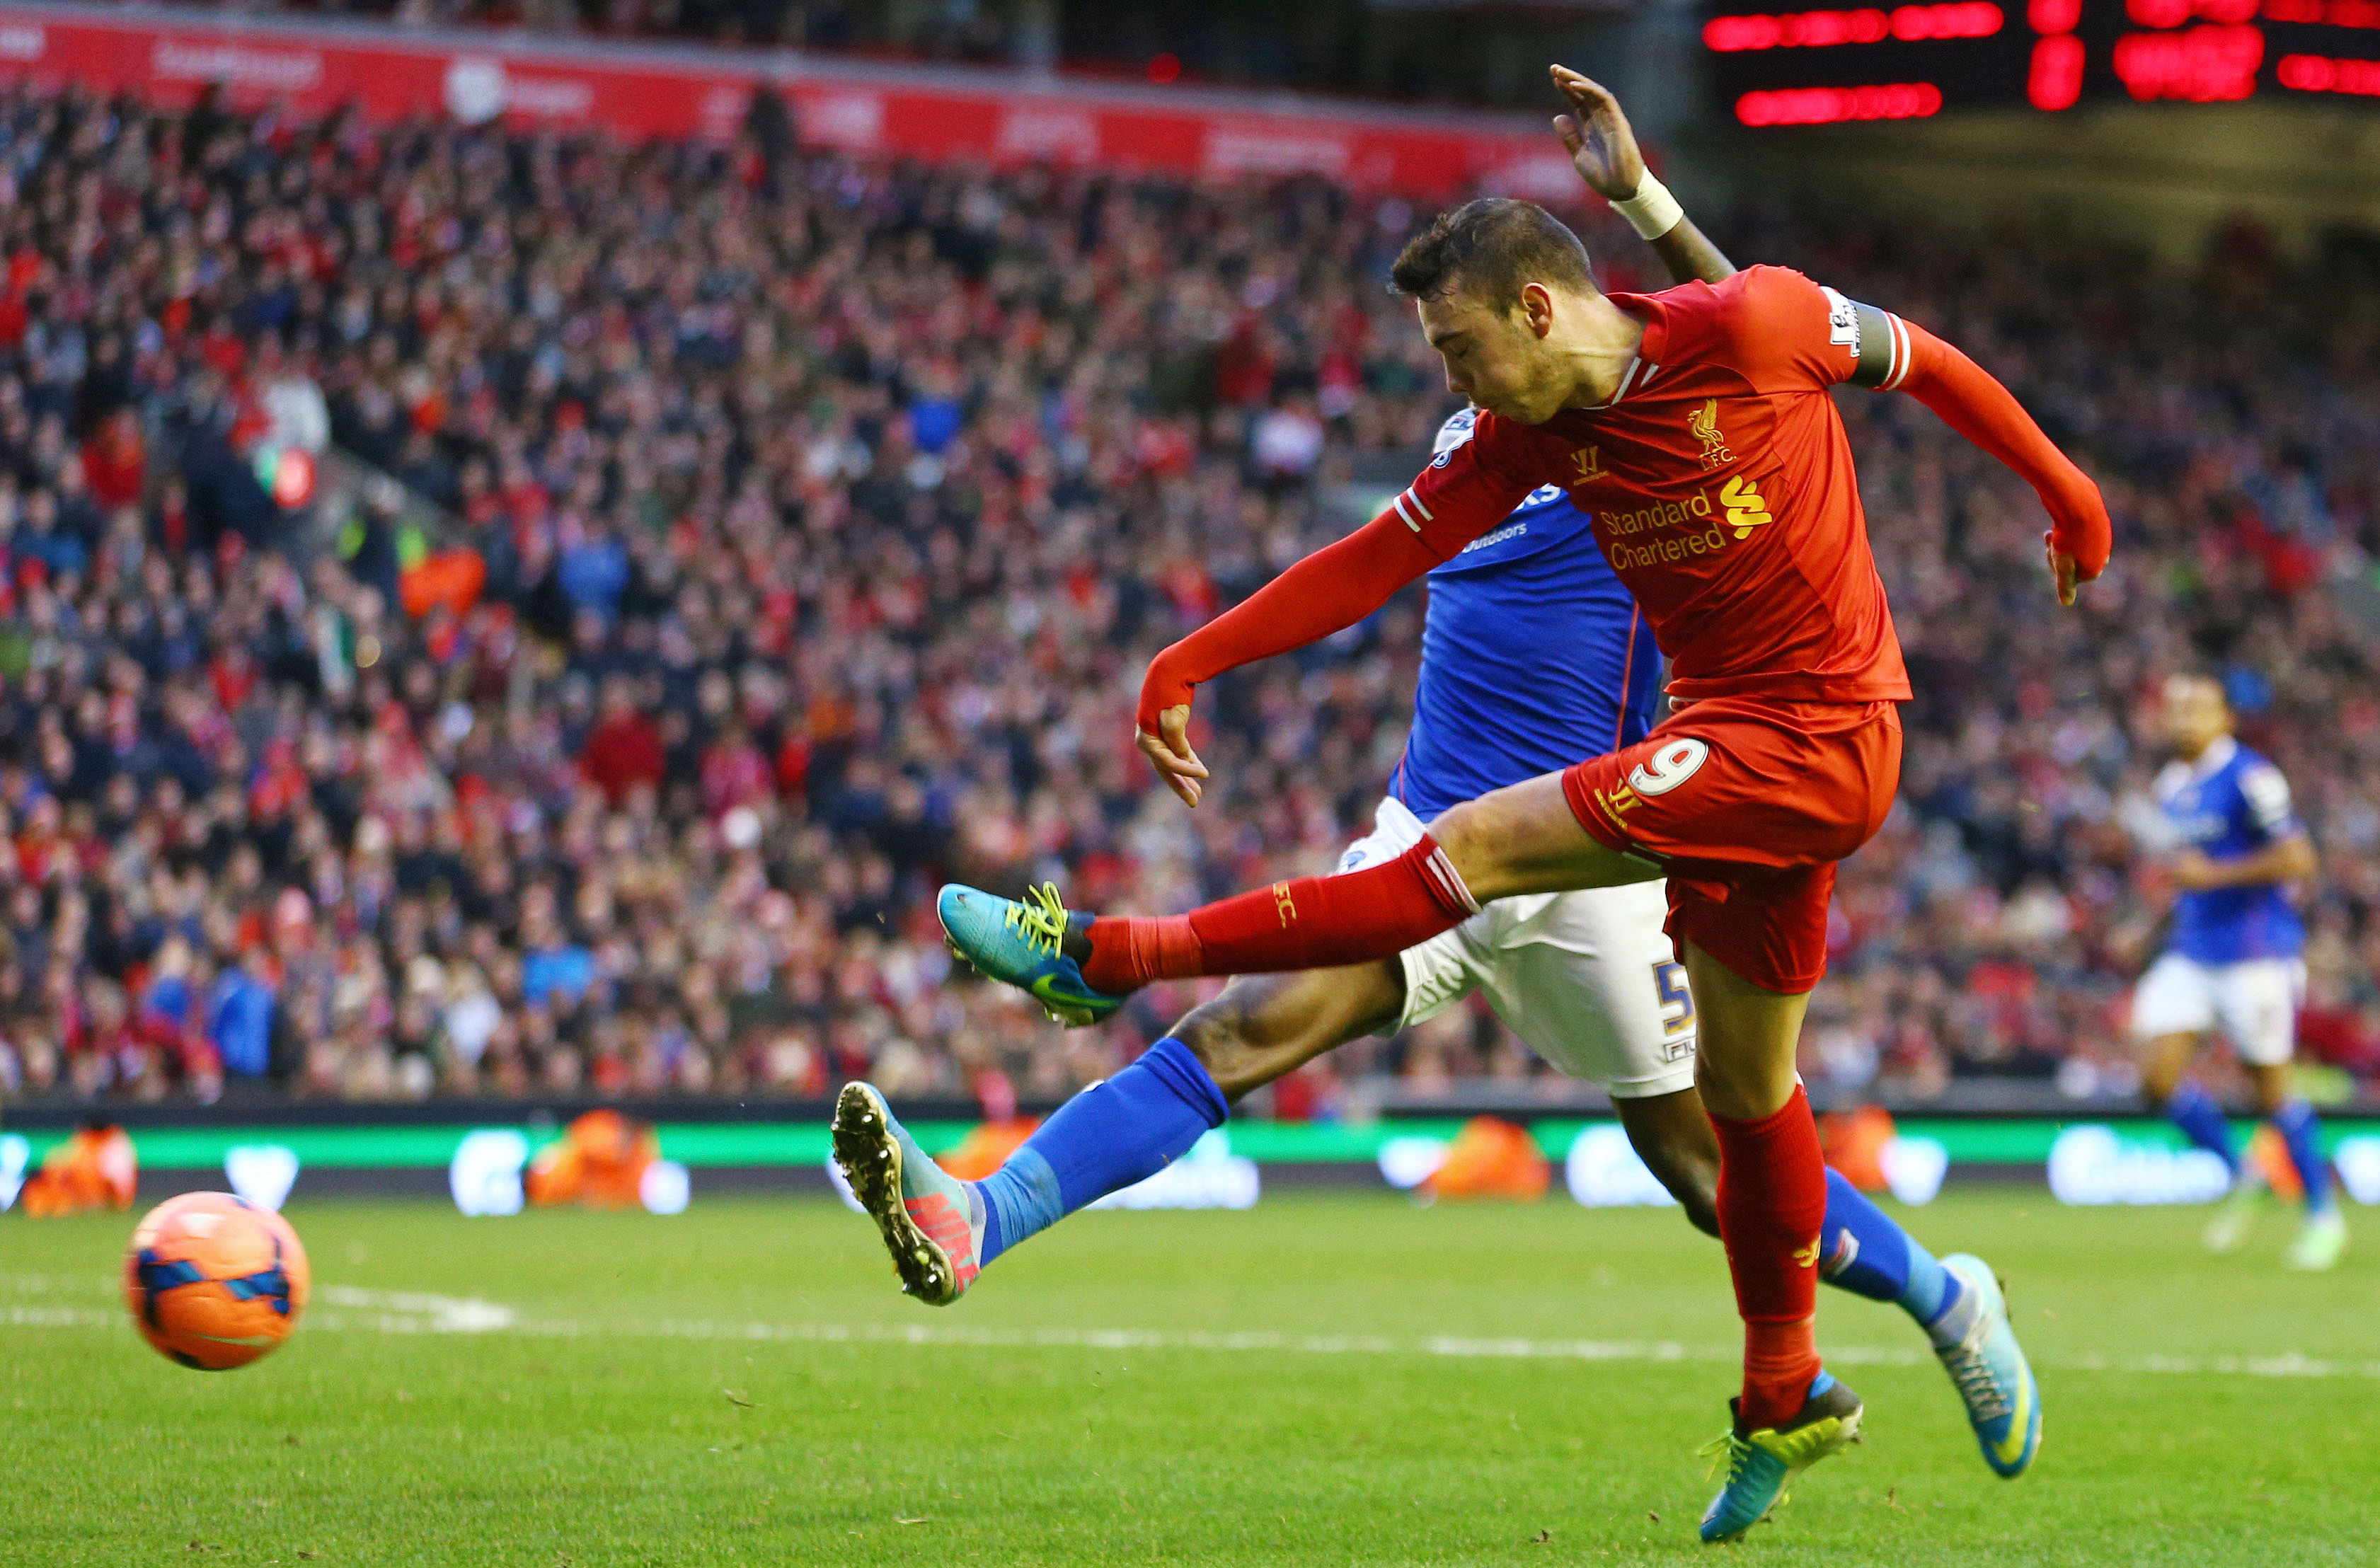 Liverpool's Iago Aspas wants Anfield stay - Agent